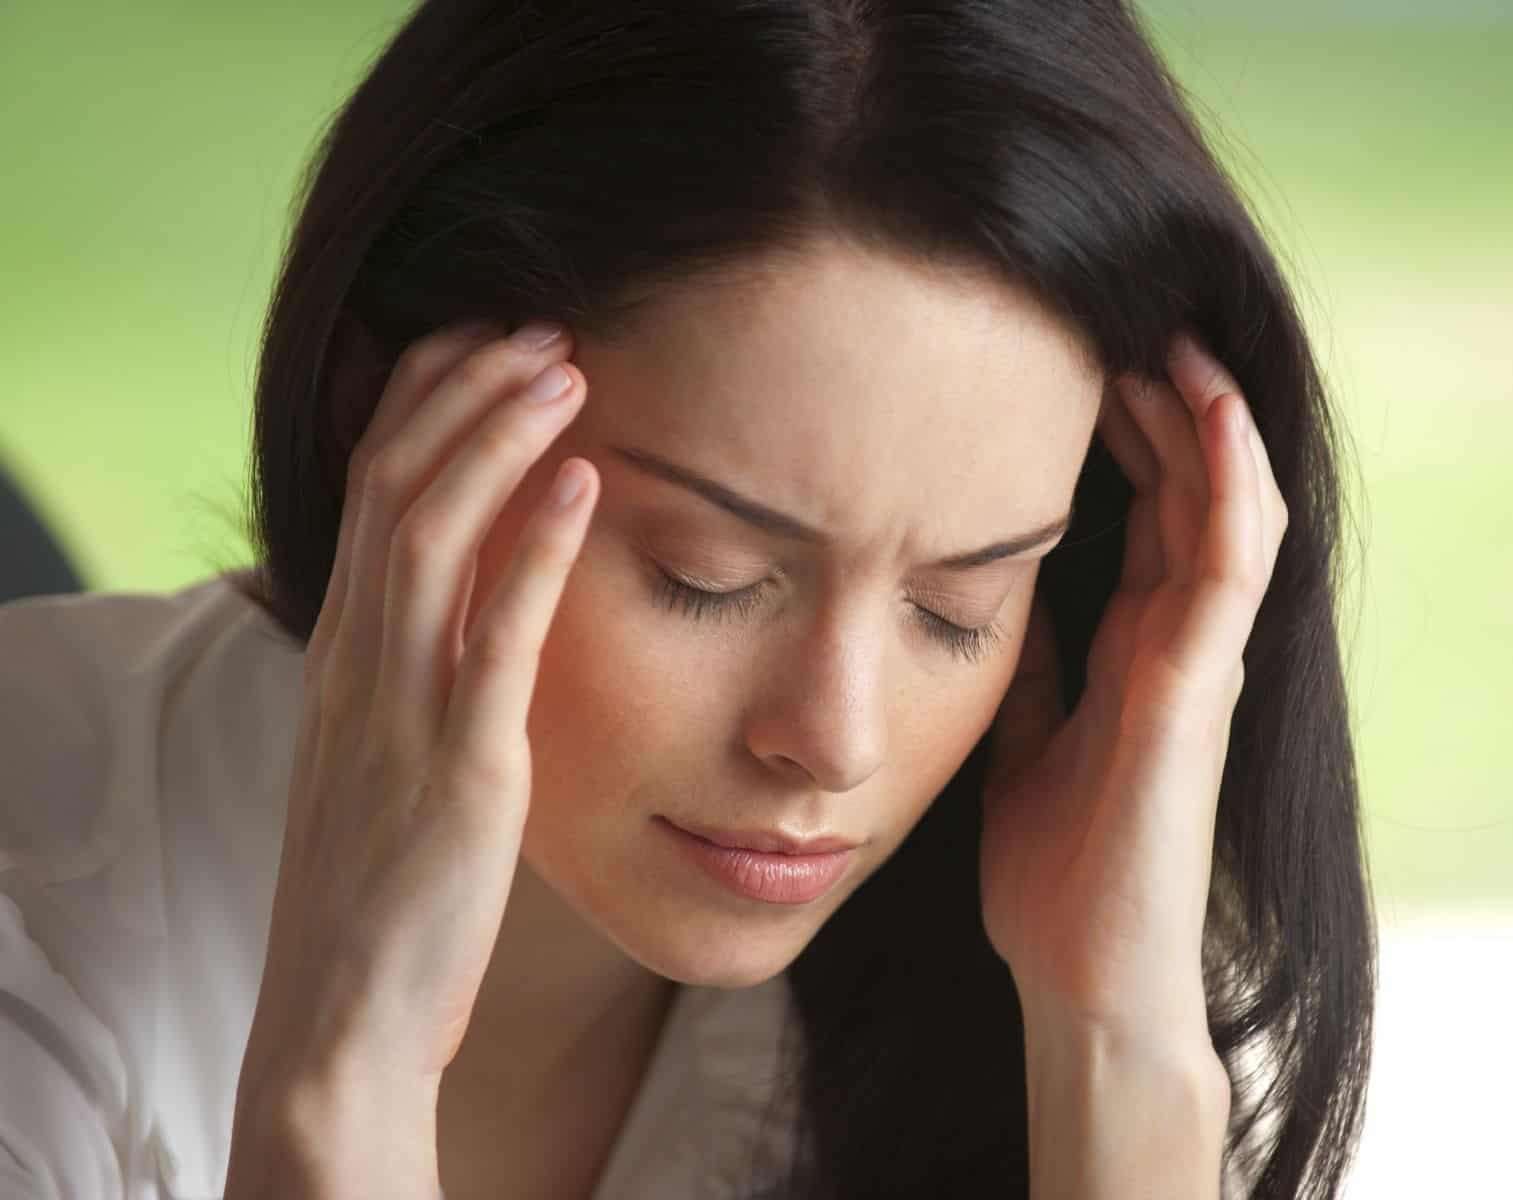 Migraine pain linked to brain waves not pulse